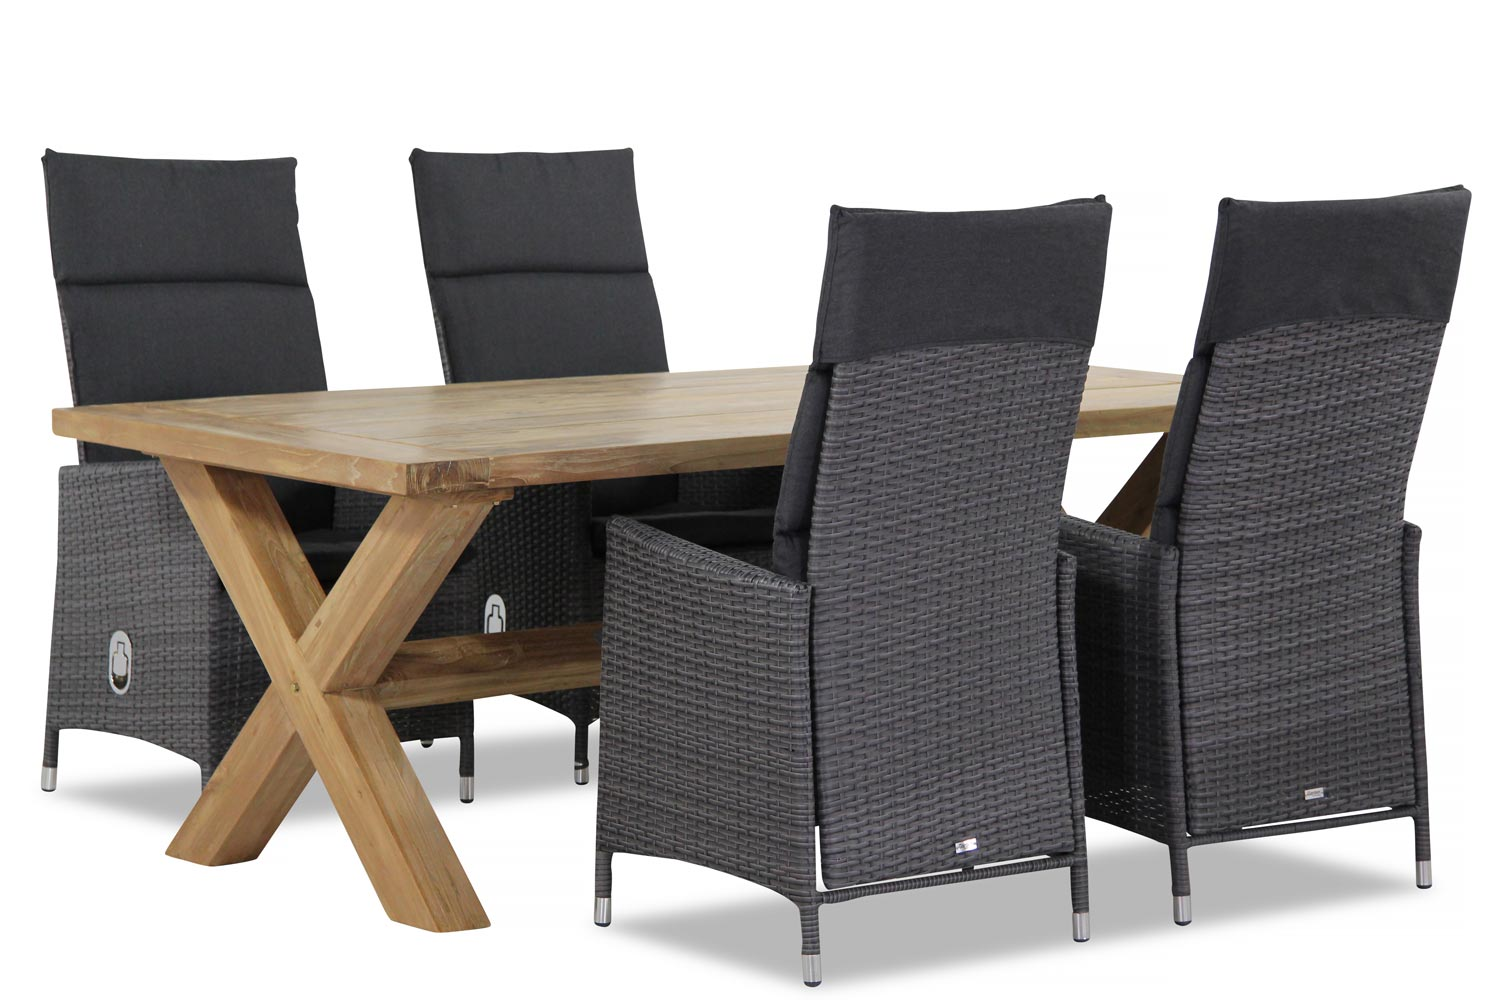 Wicker Garden Collections Denver/Weisshorn 200 cm dining tuinset 5-delig verstelbaar